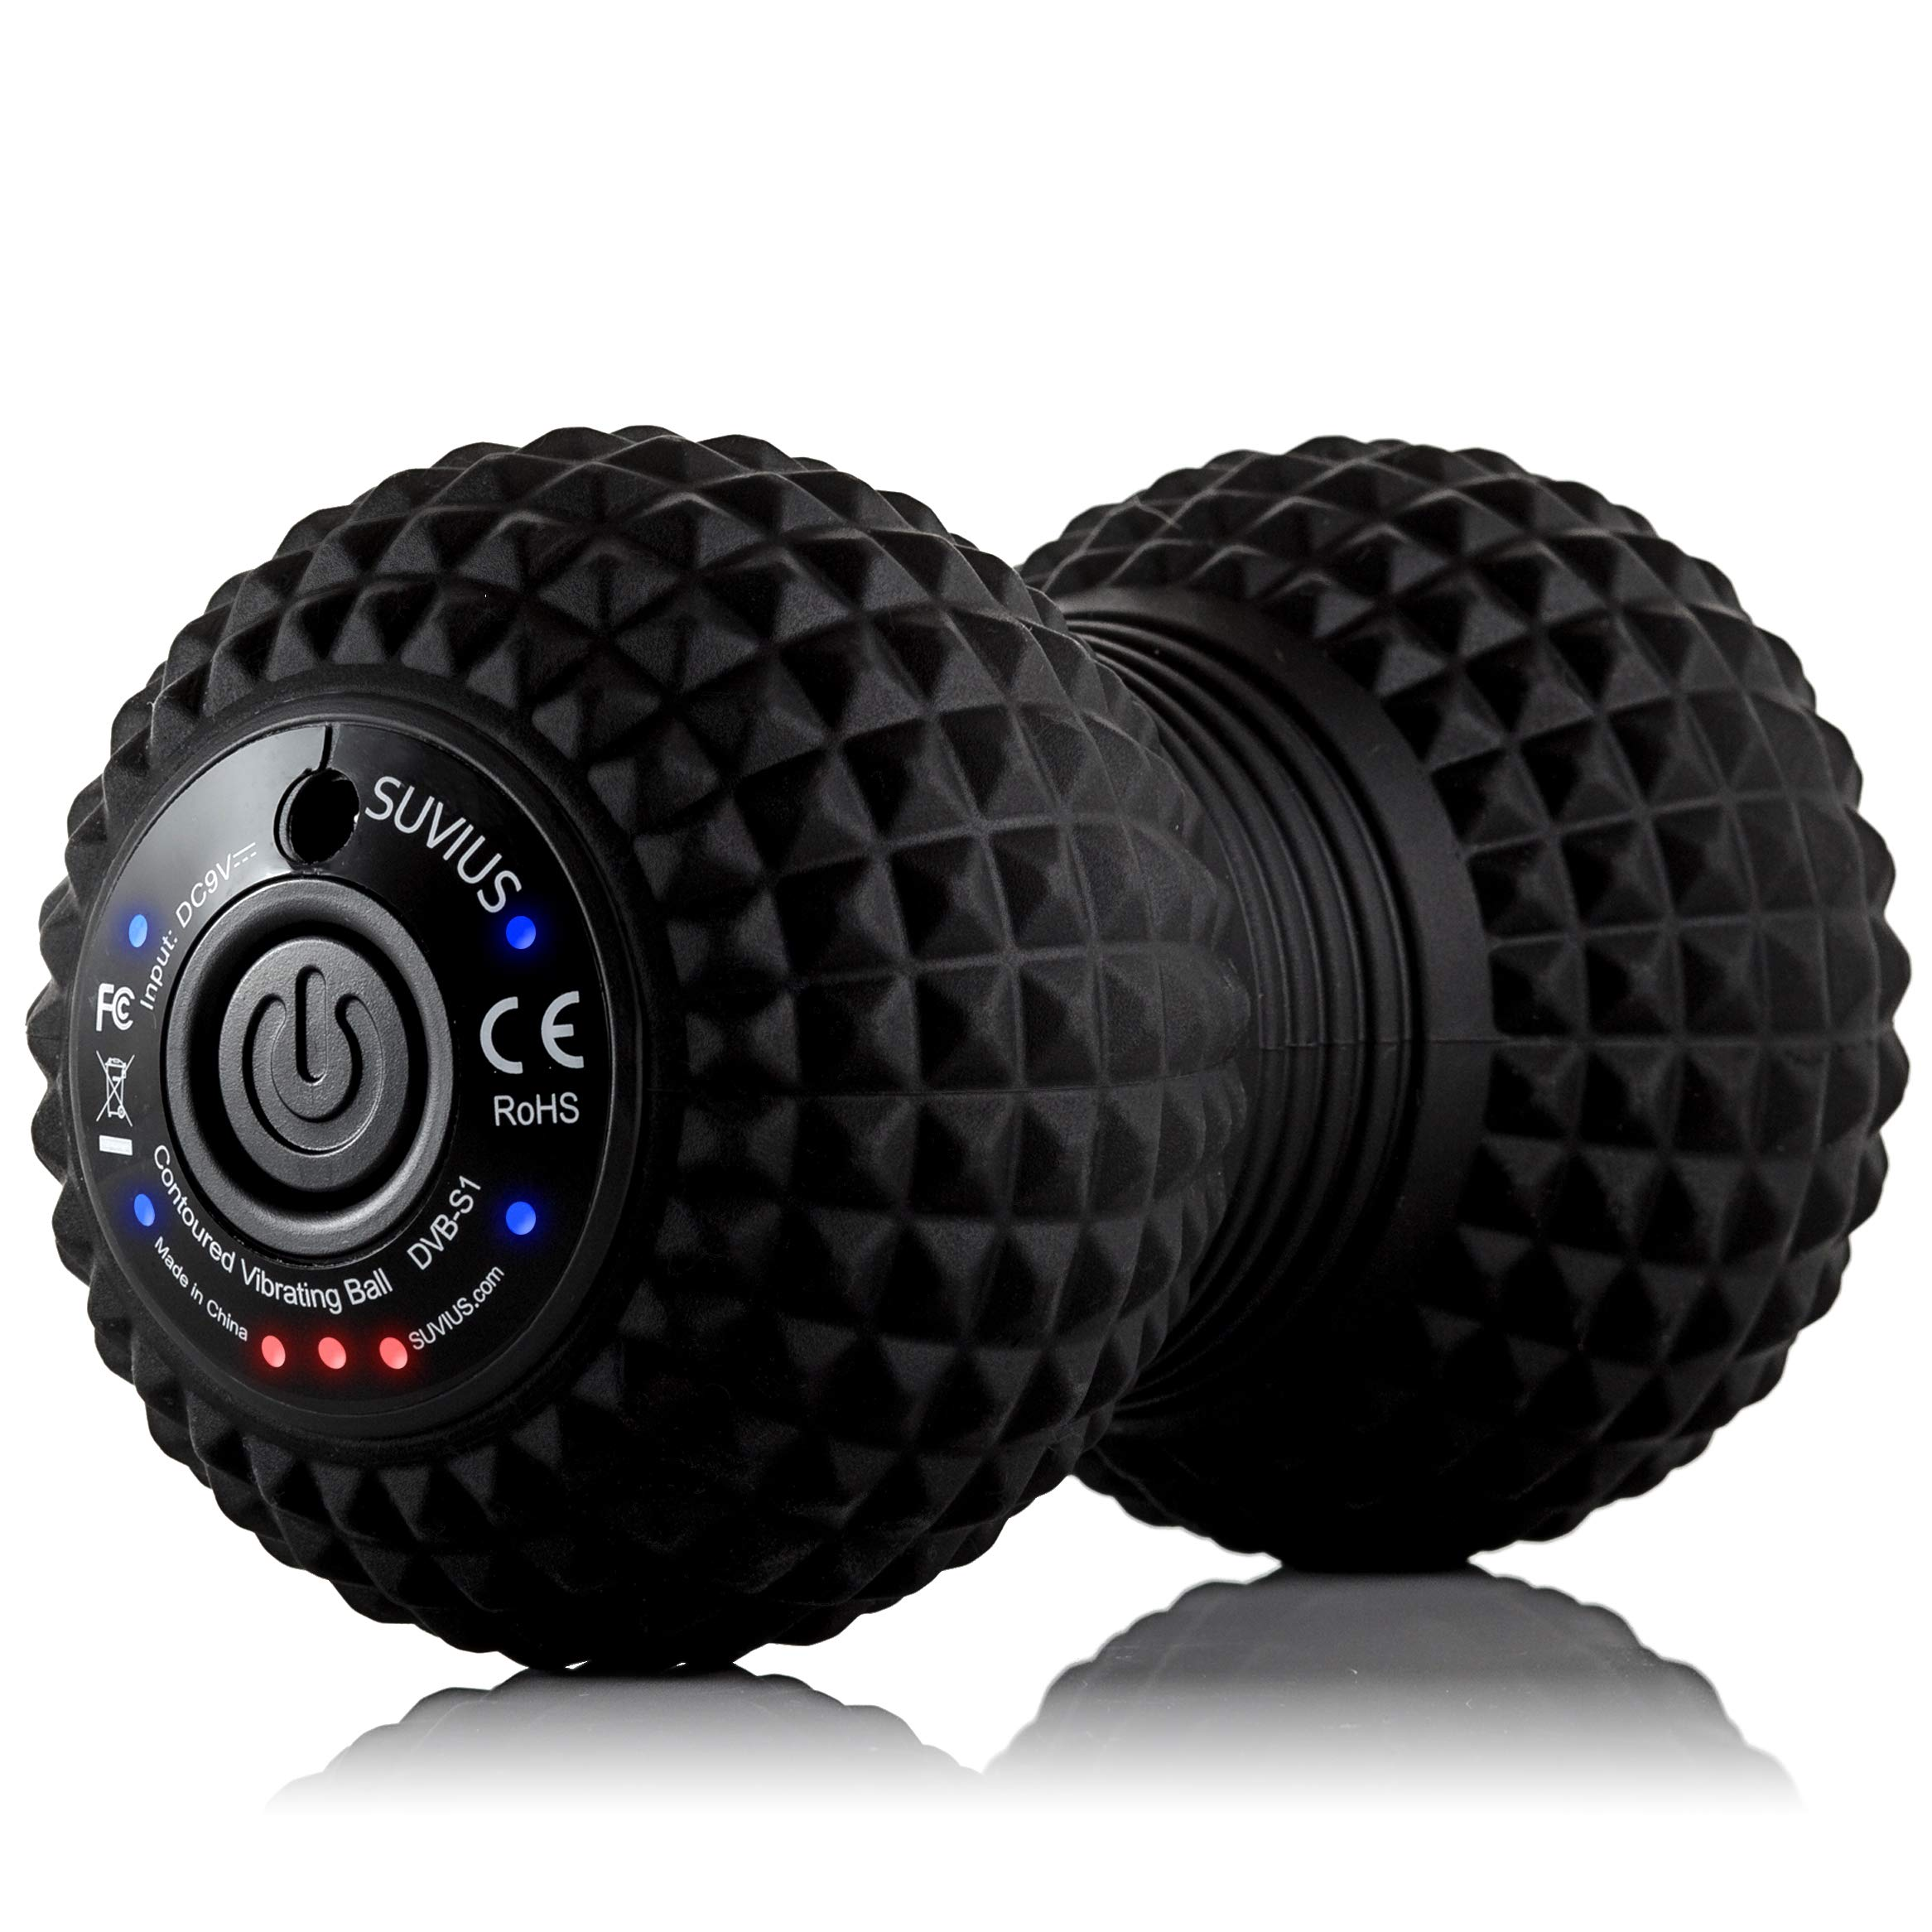 SUVIUS Peanut Electric Vibrating Rechargeable Foam Roller - 4 Intensity Levels for Firm Battery-Powered Deep Tissue Recovery, Training, Massage - Therapeutic Back and Muscle Massage Roller (Black) by SUVIUS